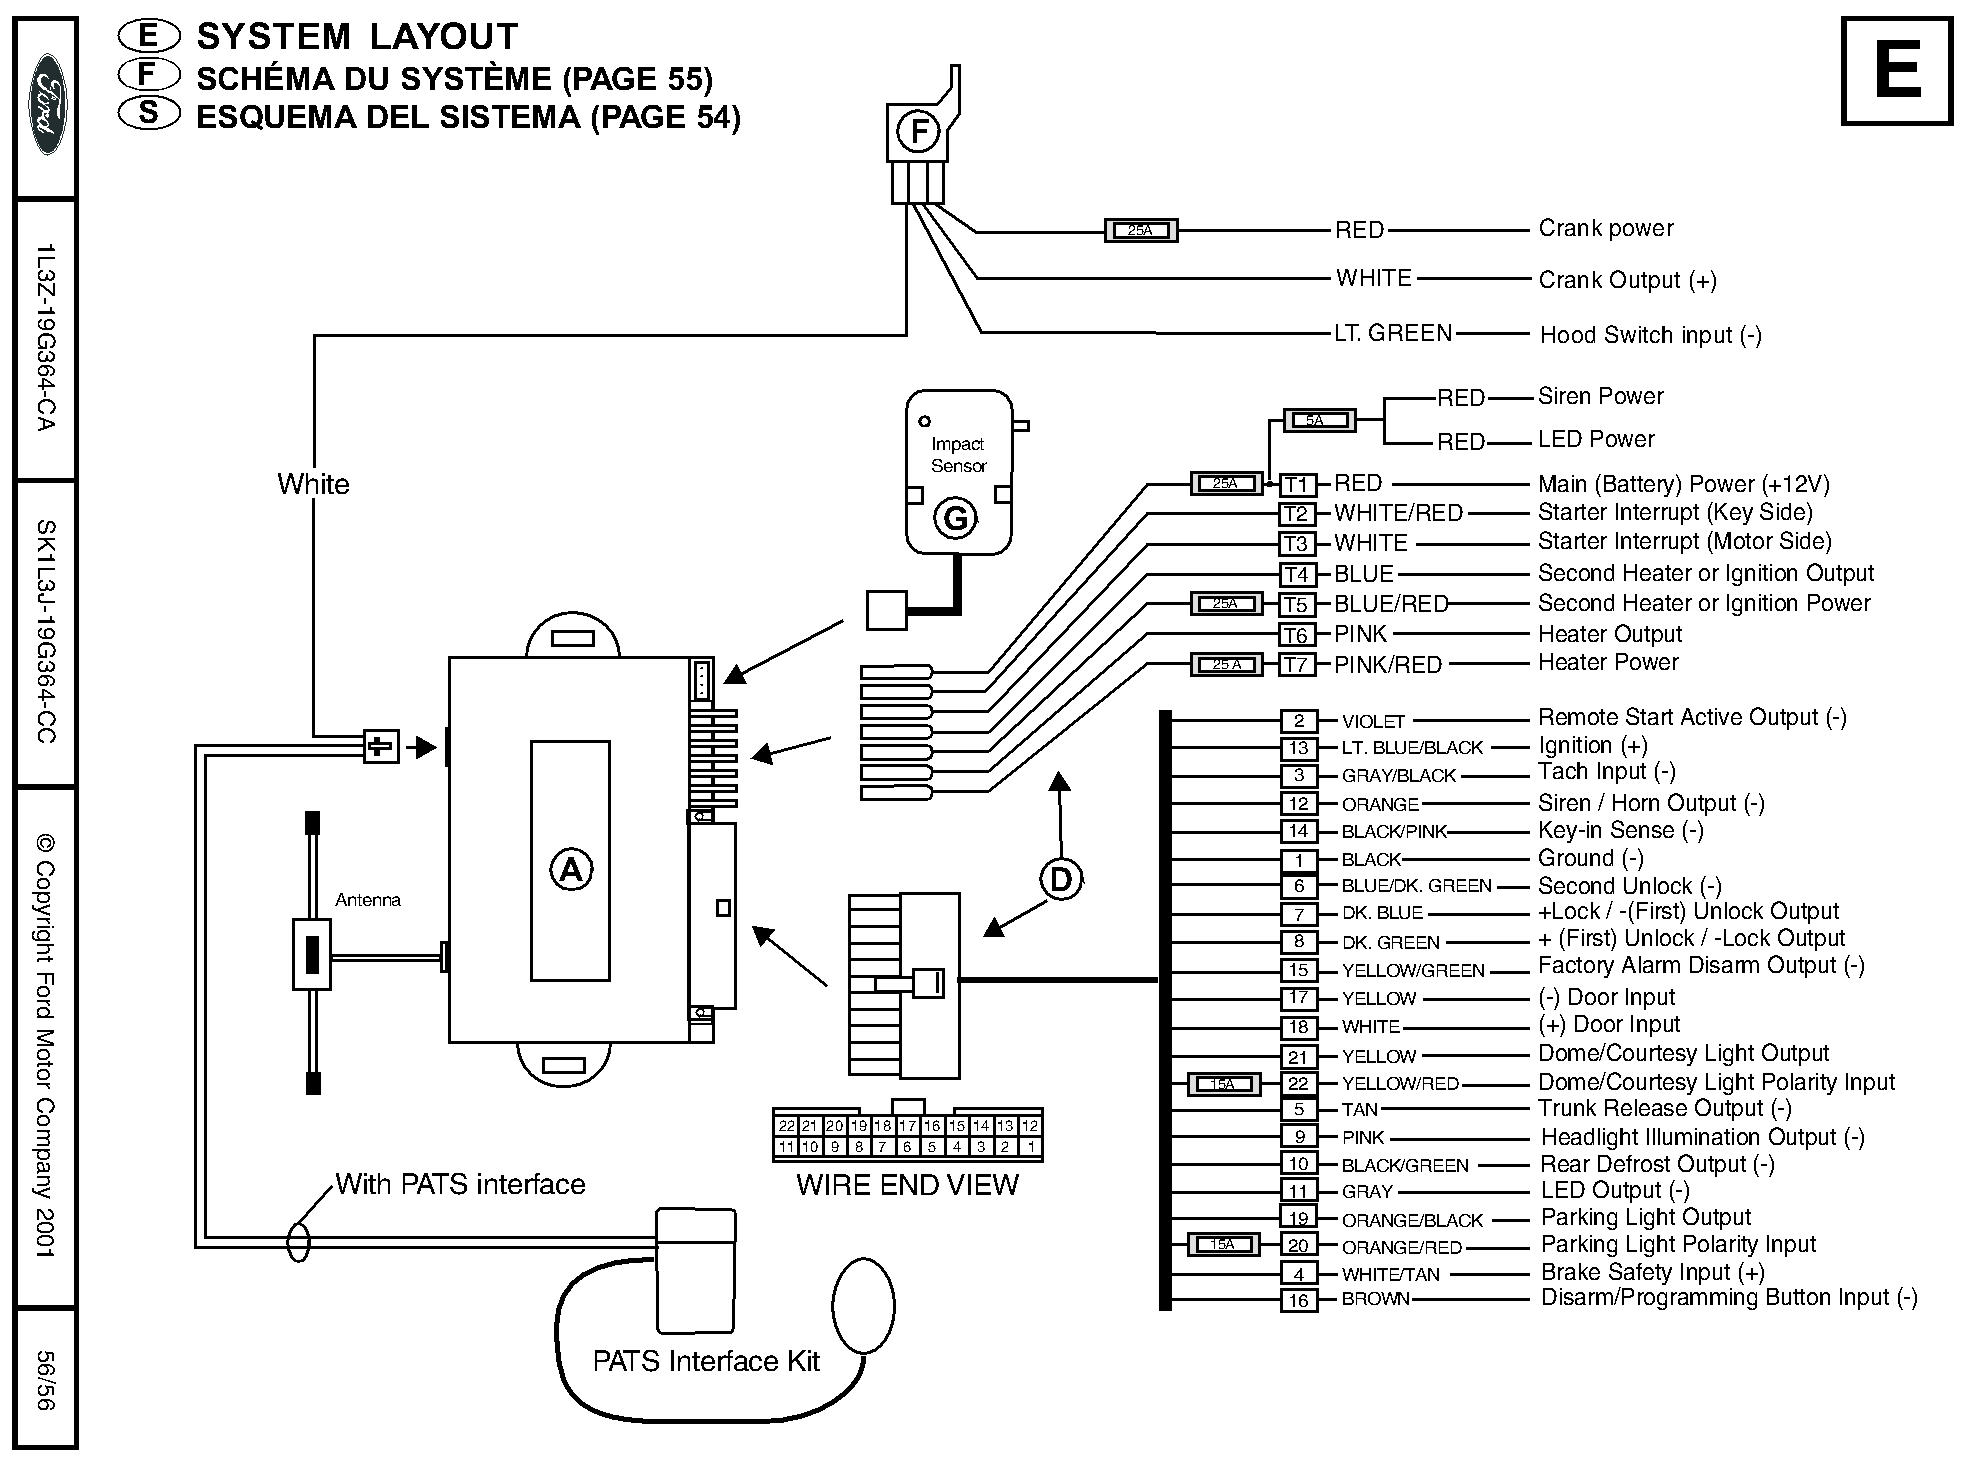 Volvo Relay Diagram 1994 940 moreover Detroit Series 60 Engine Diagram moreover 2008 Ford Fusion Milan Mkz Fuse And in addition Topic1981550 together with Volkswagen Fuel Filter Replacement. on volvo v70 fuel pump relay location